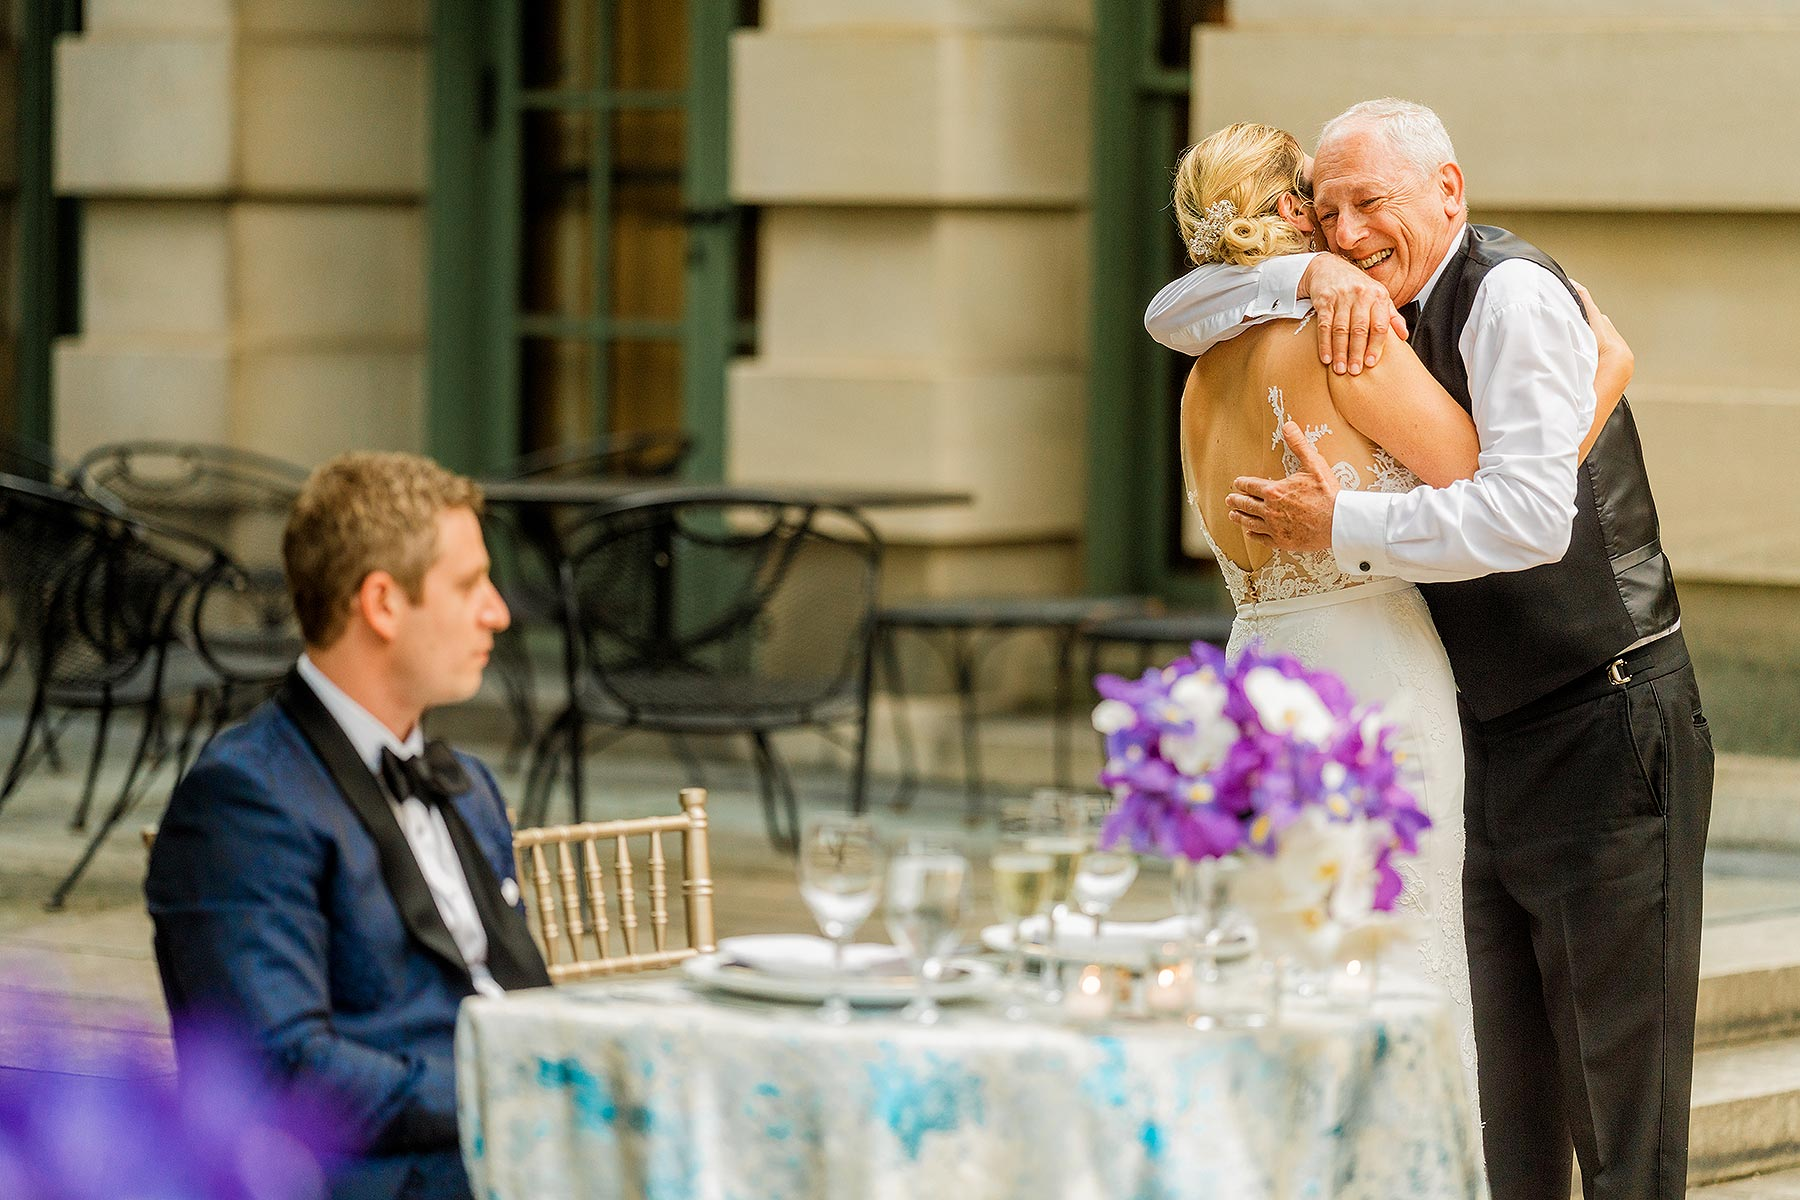 emotional father of the bride speech at larz anderson wedding courtyard by Washington DC Wedding Photographer Adam Mason